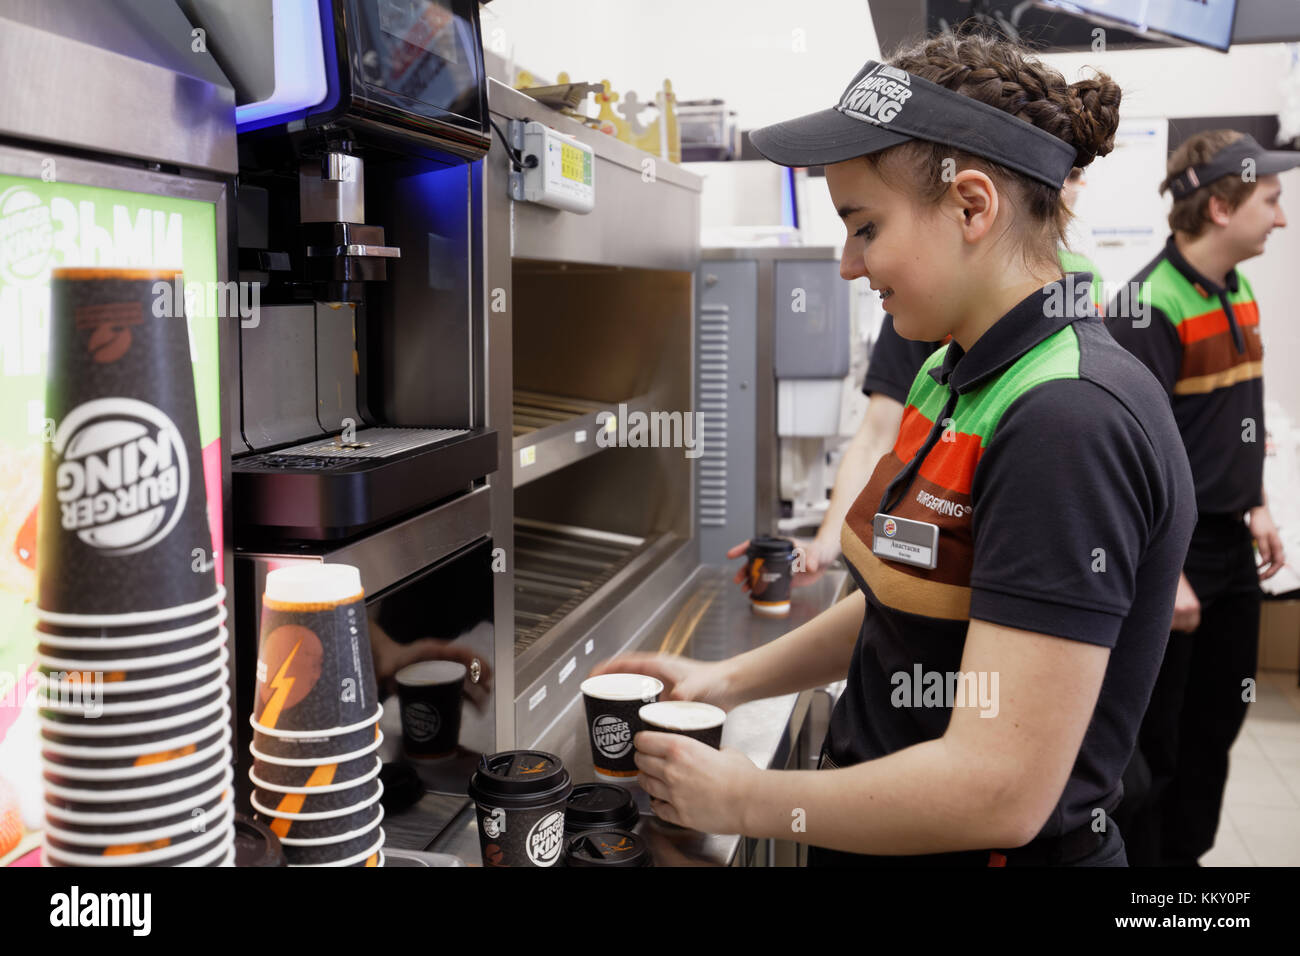 Staff of 500th Burger King restaurant in Russia preparing coffee in the day of opening - Stock Image